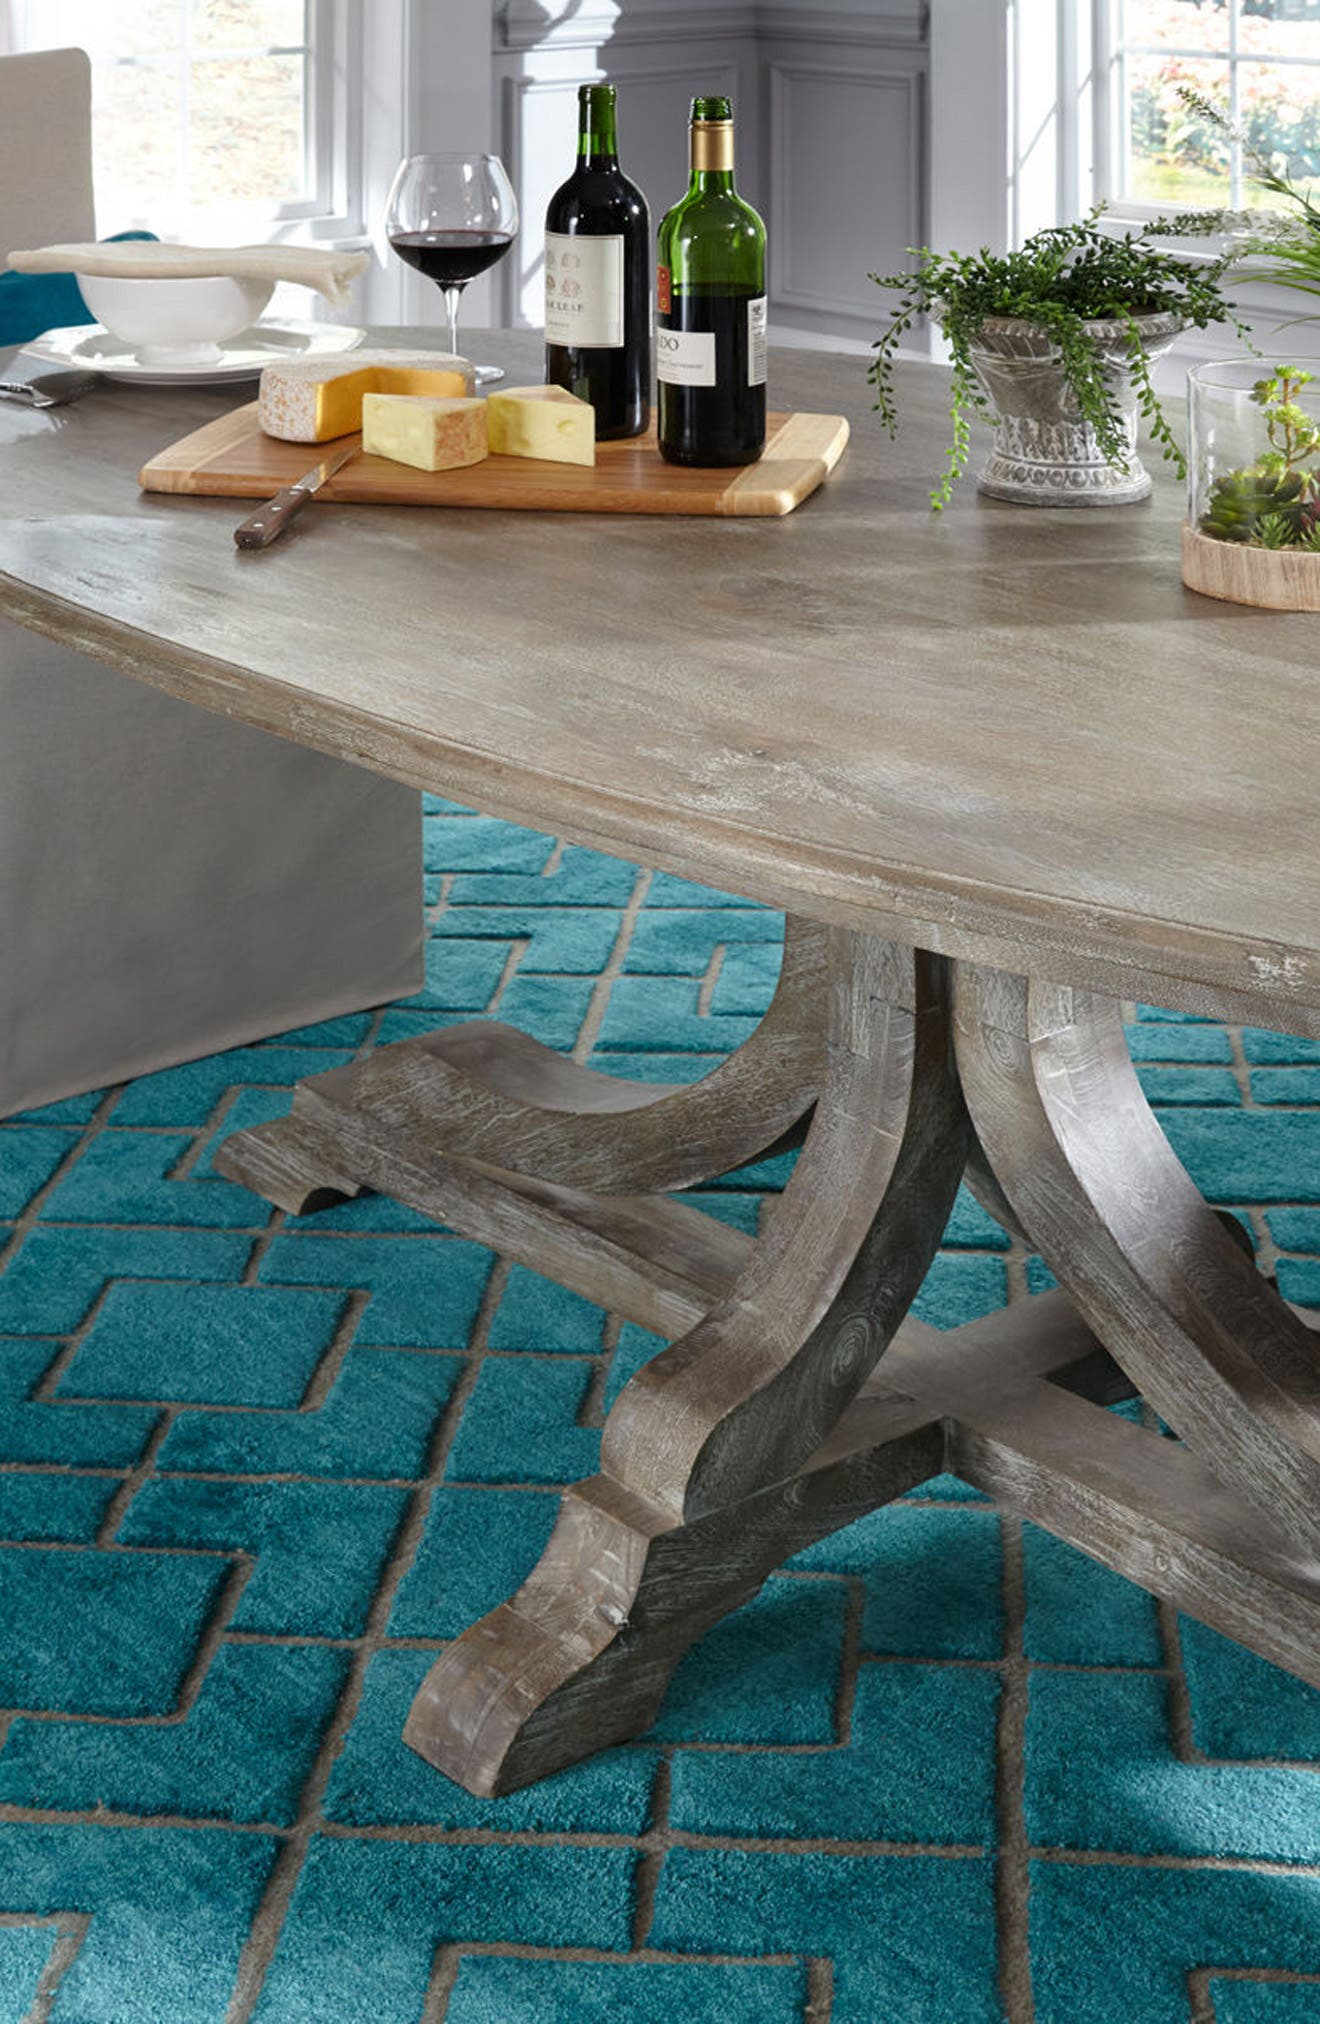 VILLA HOME COLLECTION,                             'Over Tufted - Turquoise' Rug,                             Alternate thumbnail 4, color,                             440